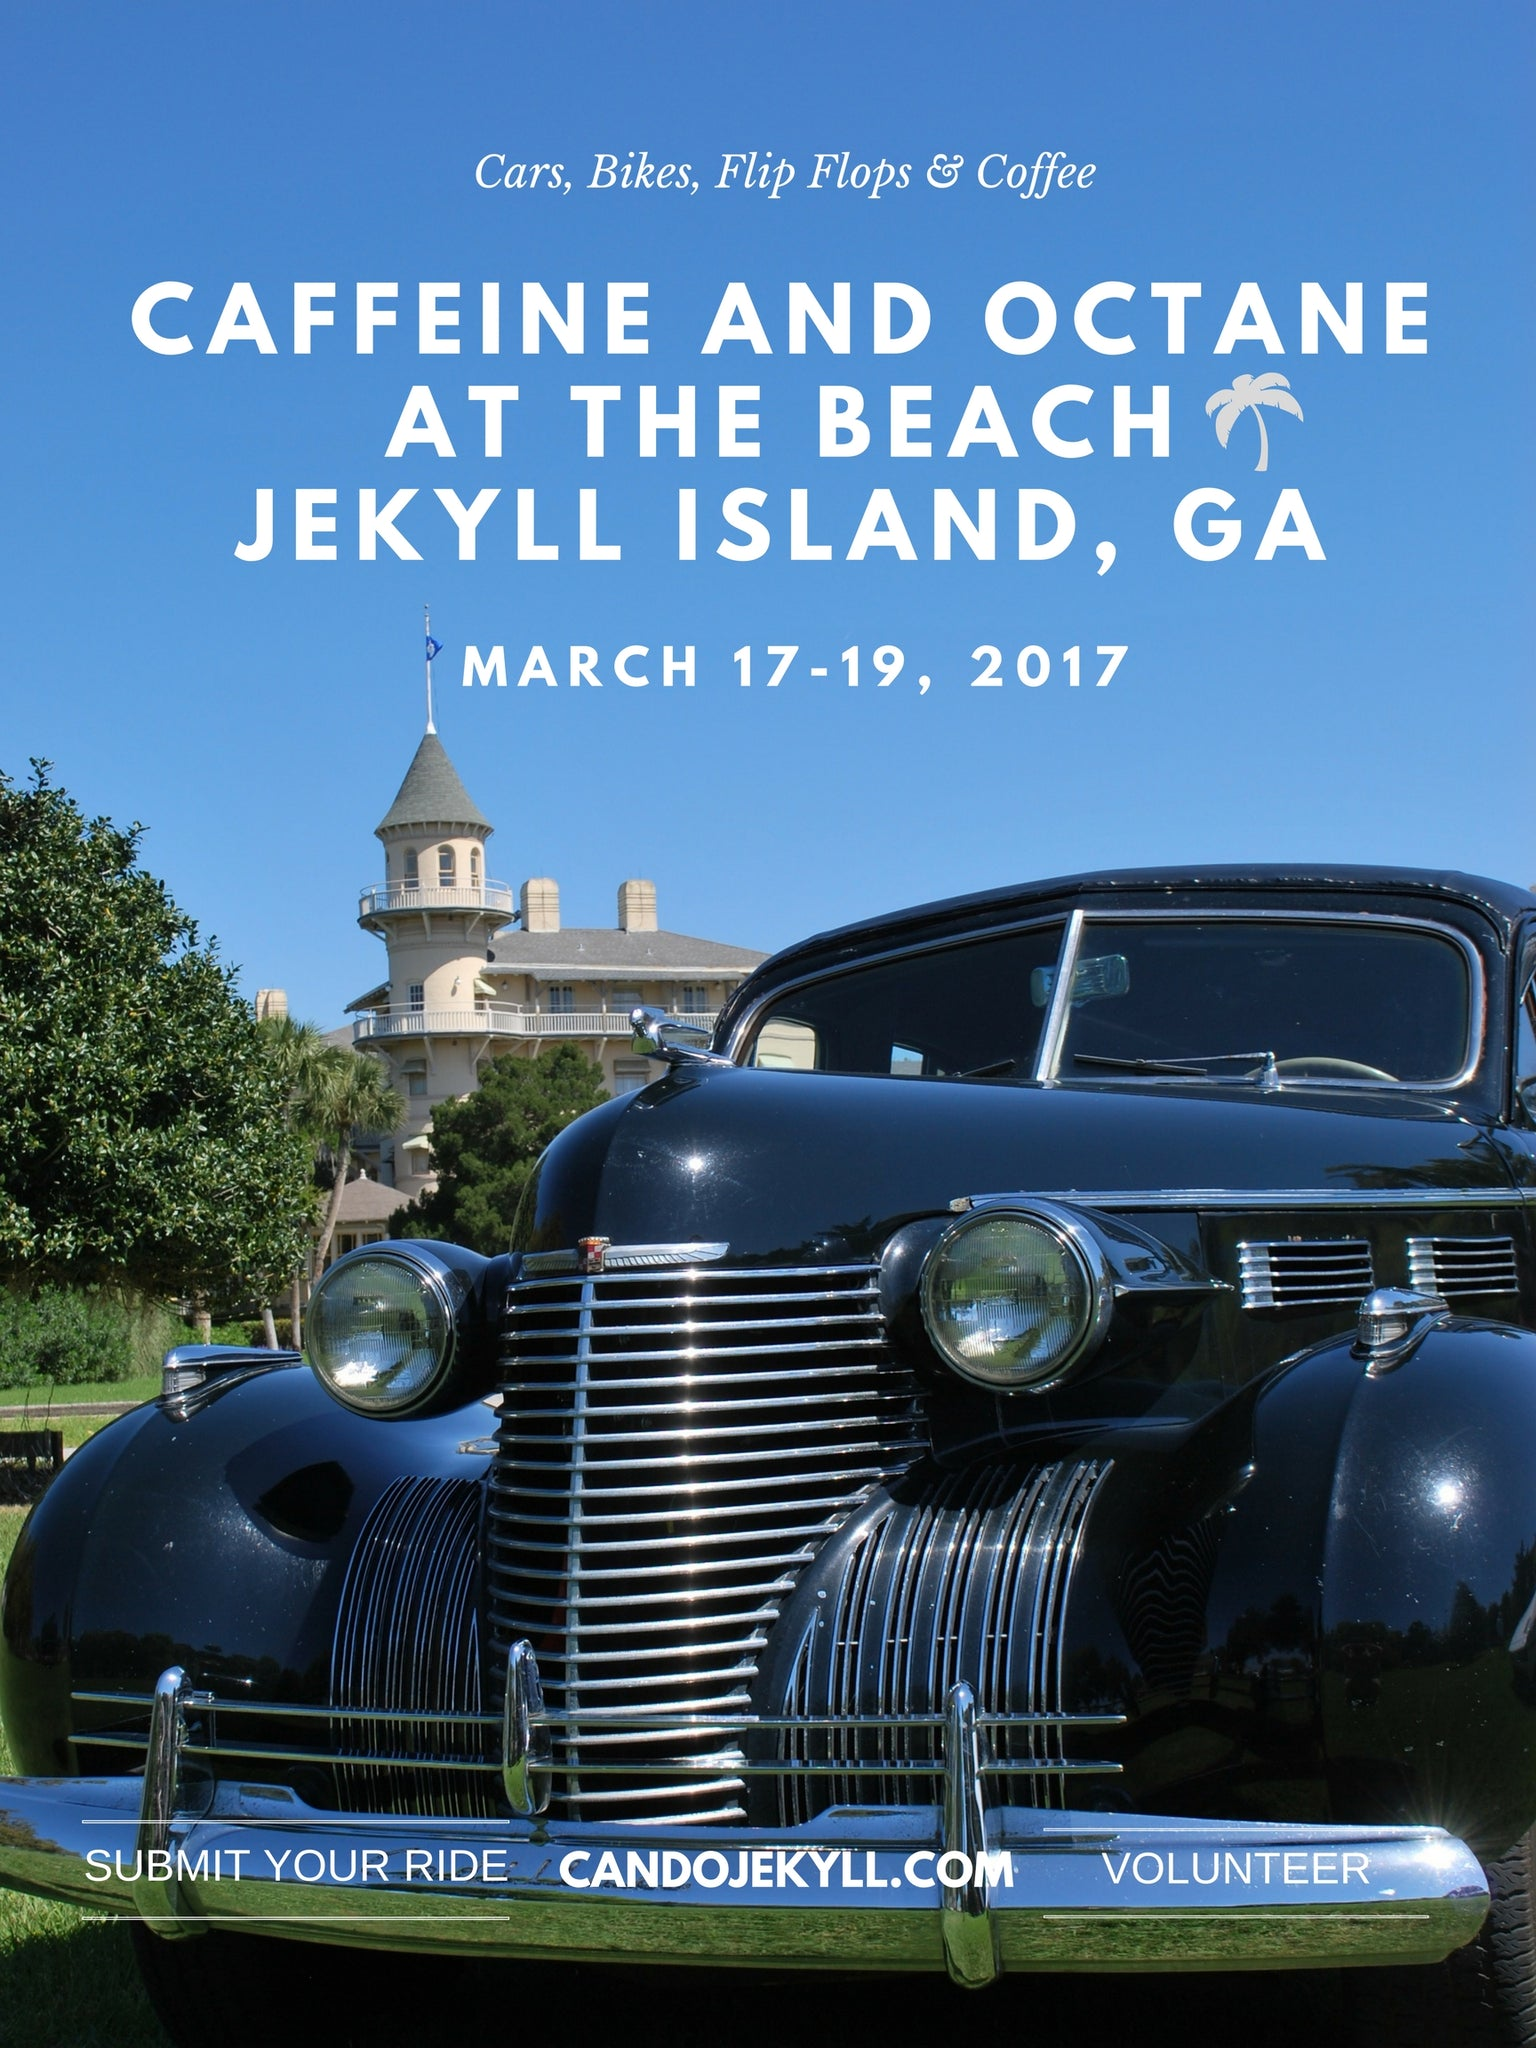 Caffeine And Octane At The Beach Fuller Moto - Caffeine and octane car show schedule